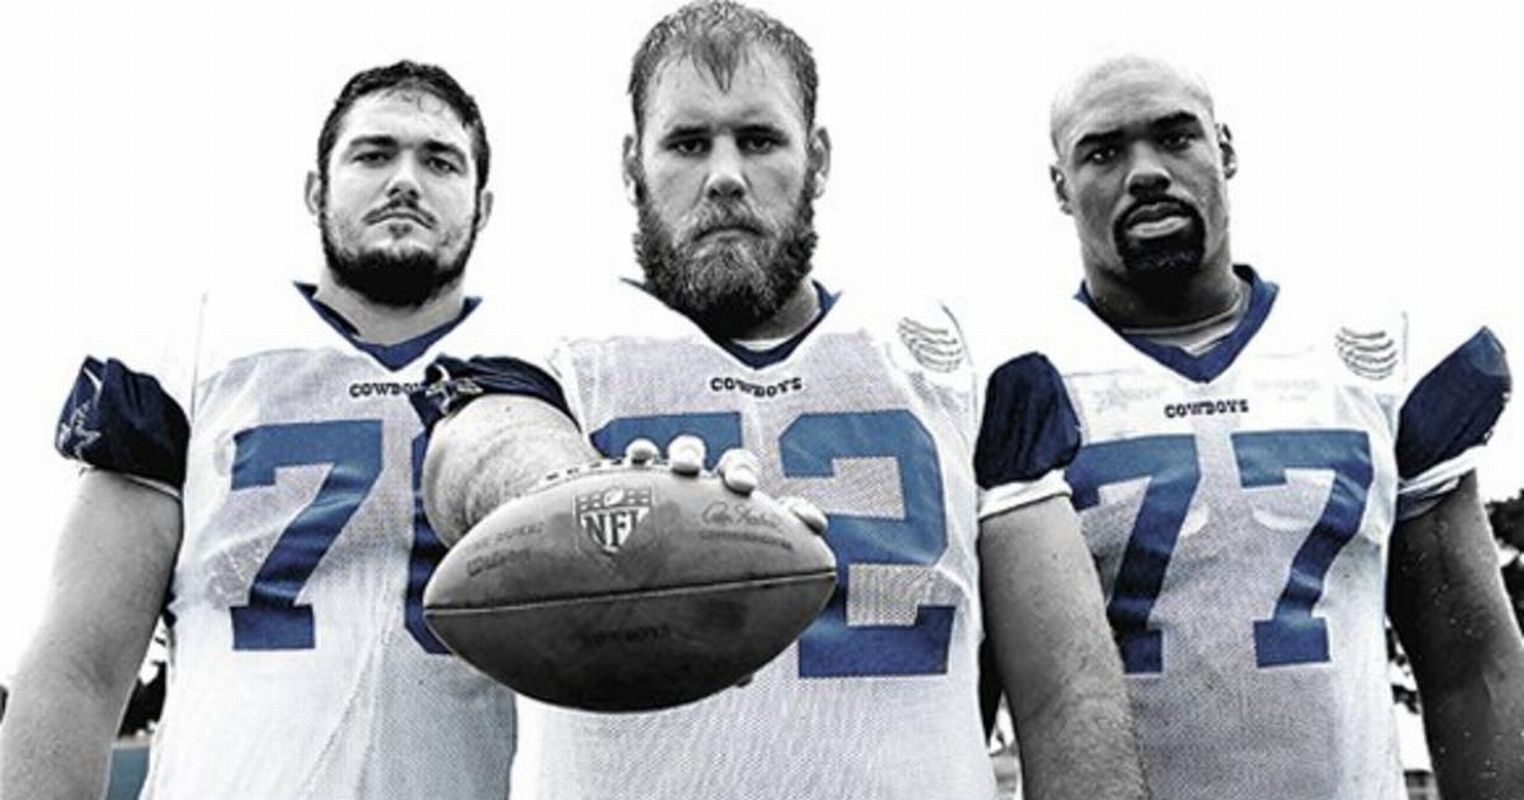 Cowboys Blog - Simple Solution On Offense, Embrace The Nasty!